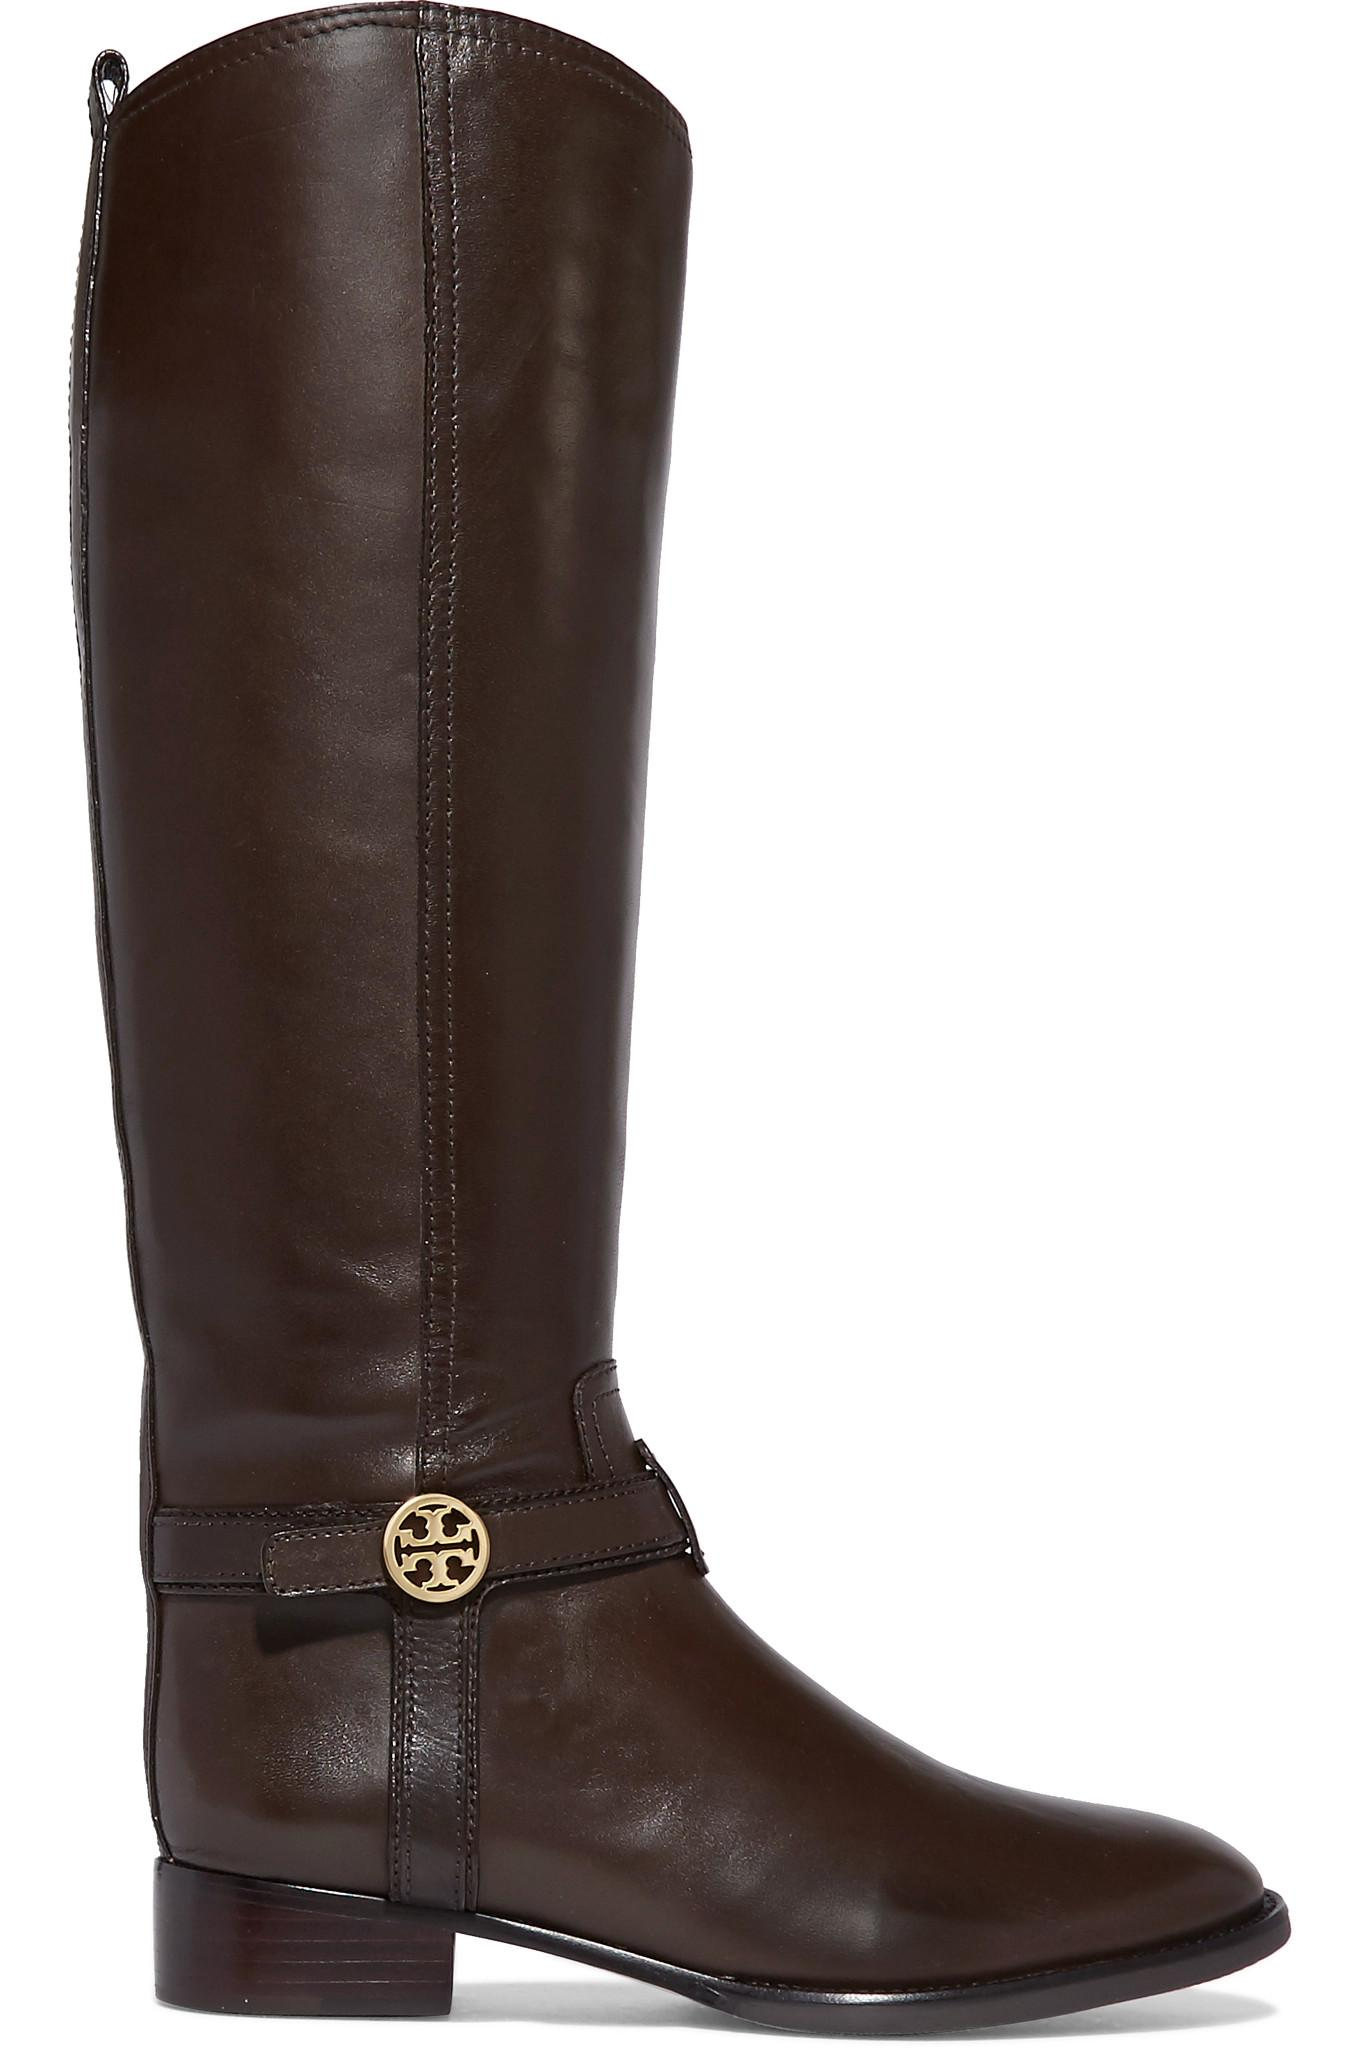 8311e61ff25e21 Tory Burch Bristol Leather Knee Boots in Brown - Lyst